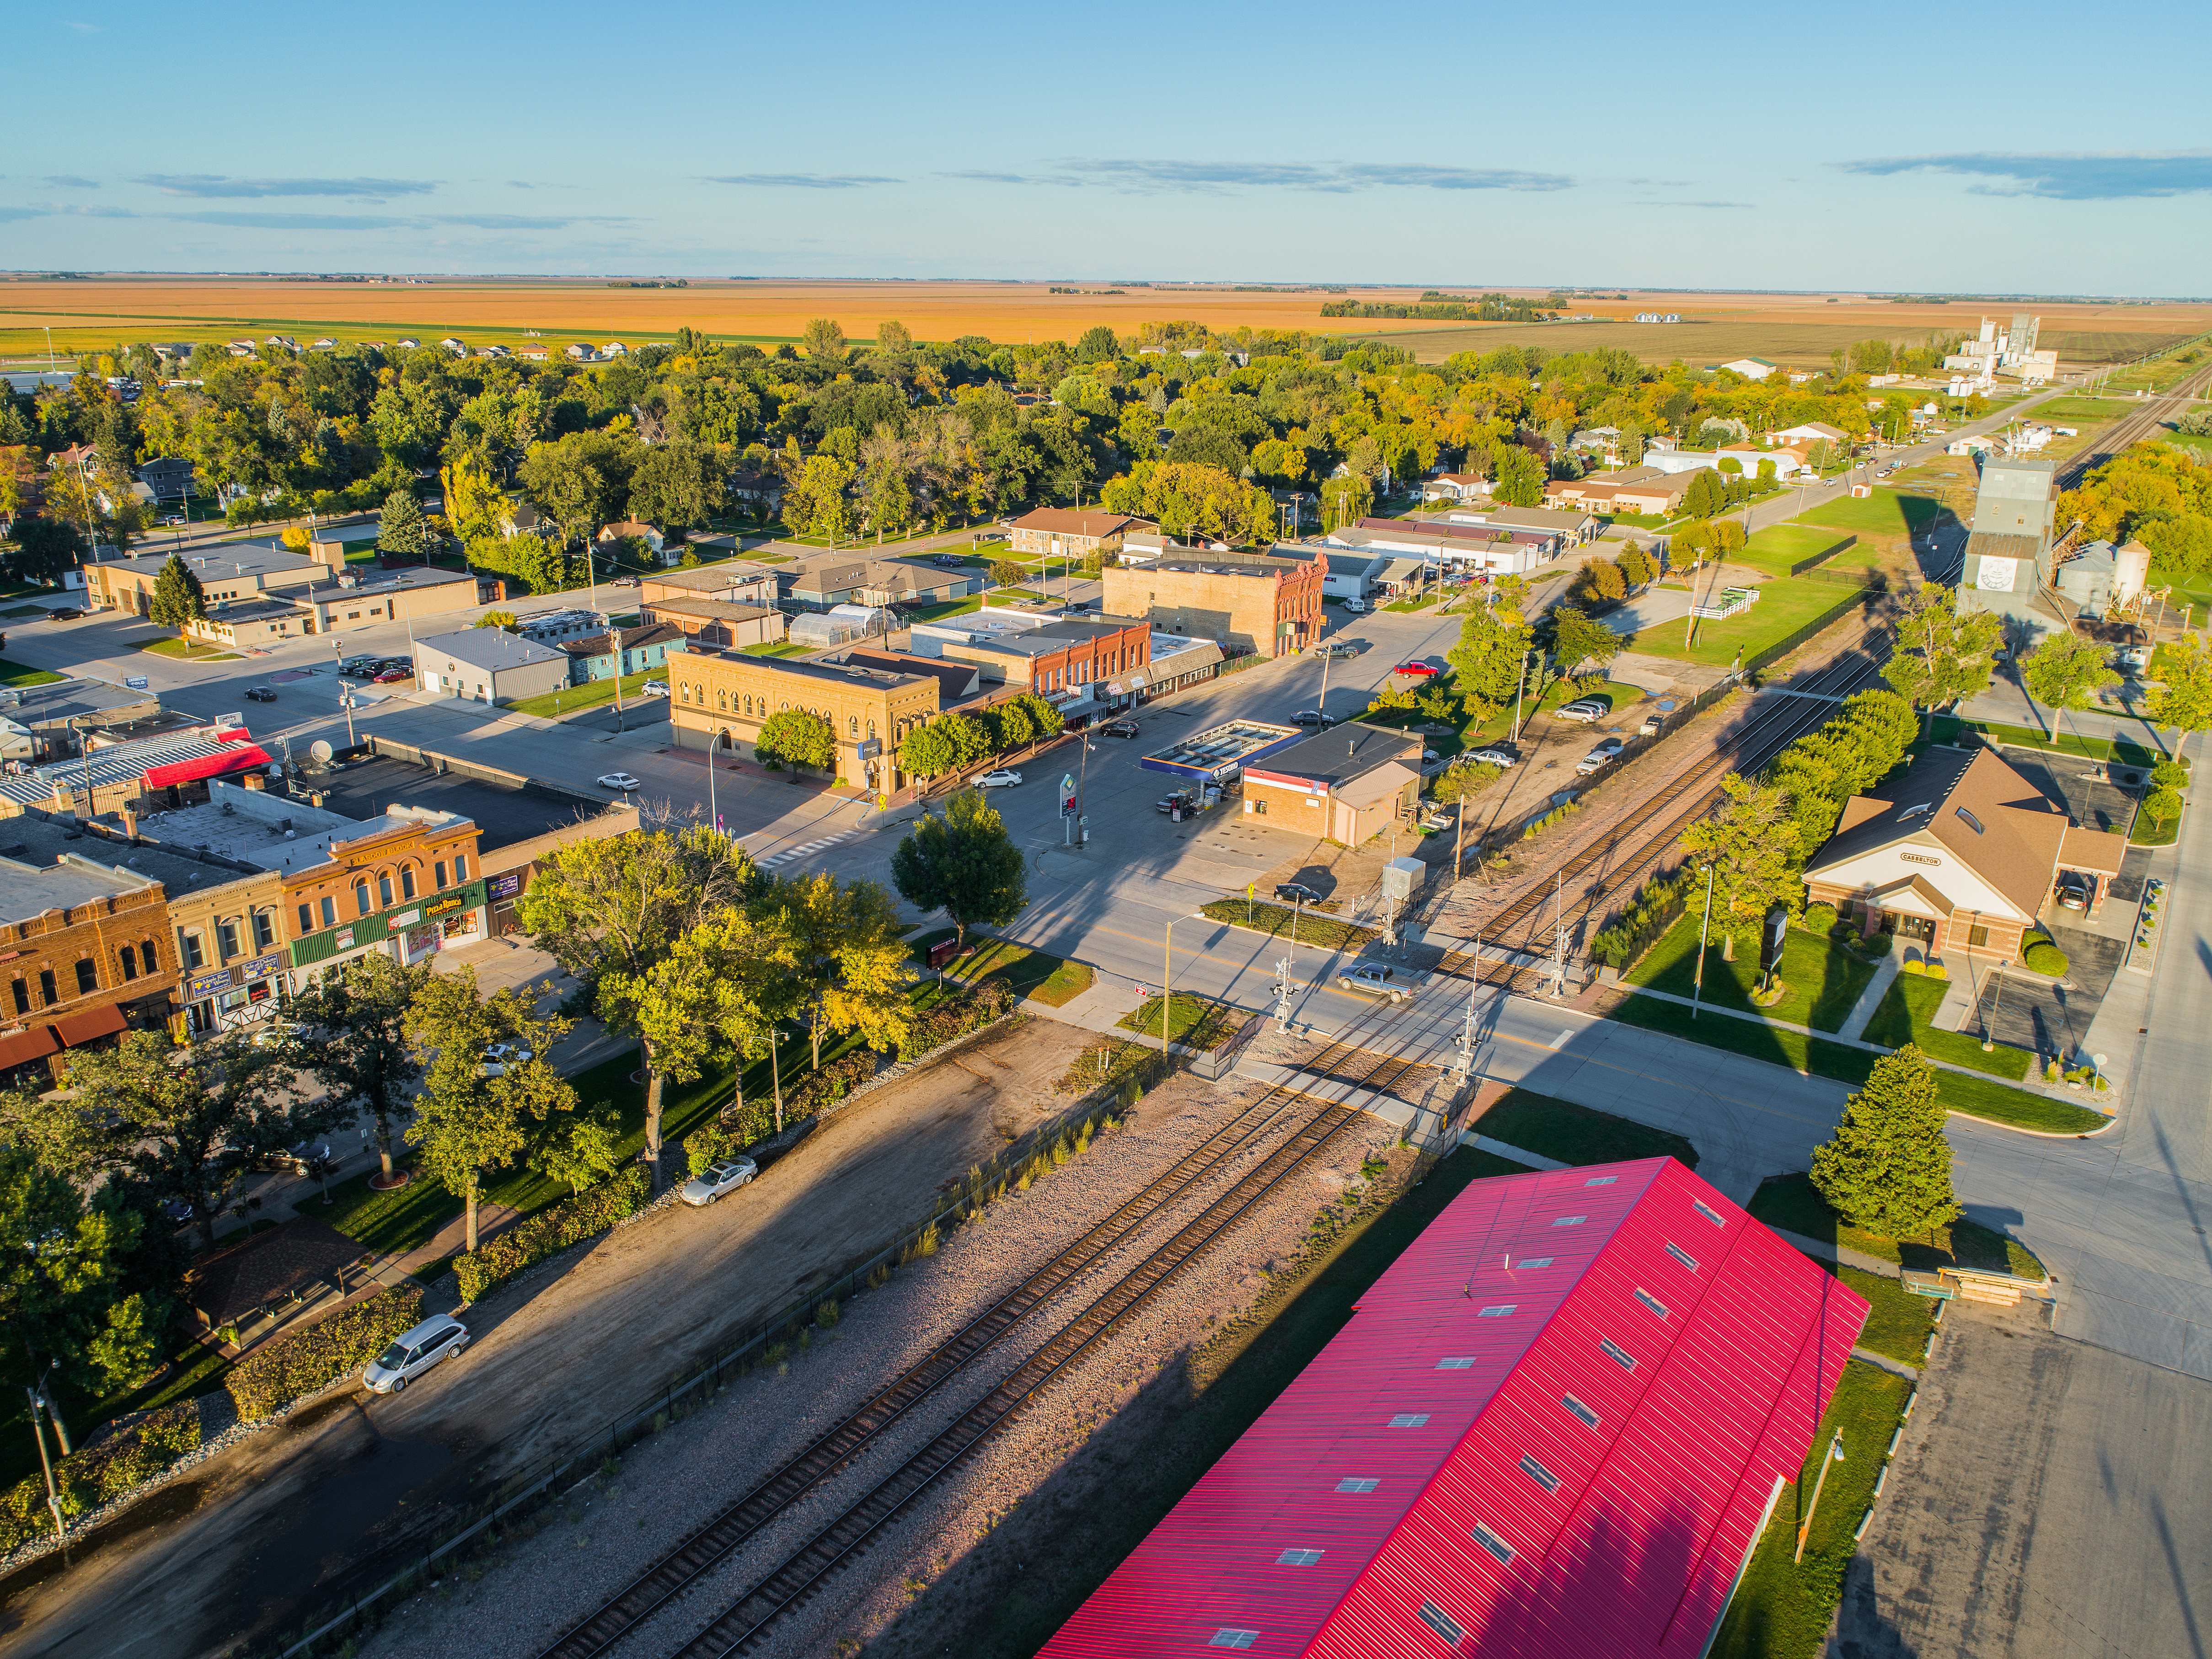 Aerial Downtown Casselton